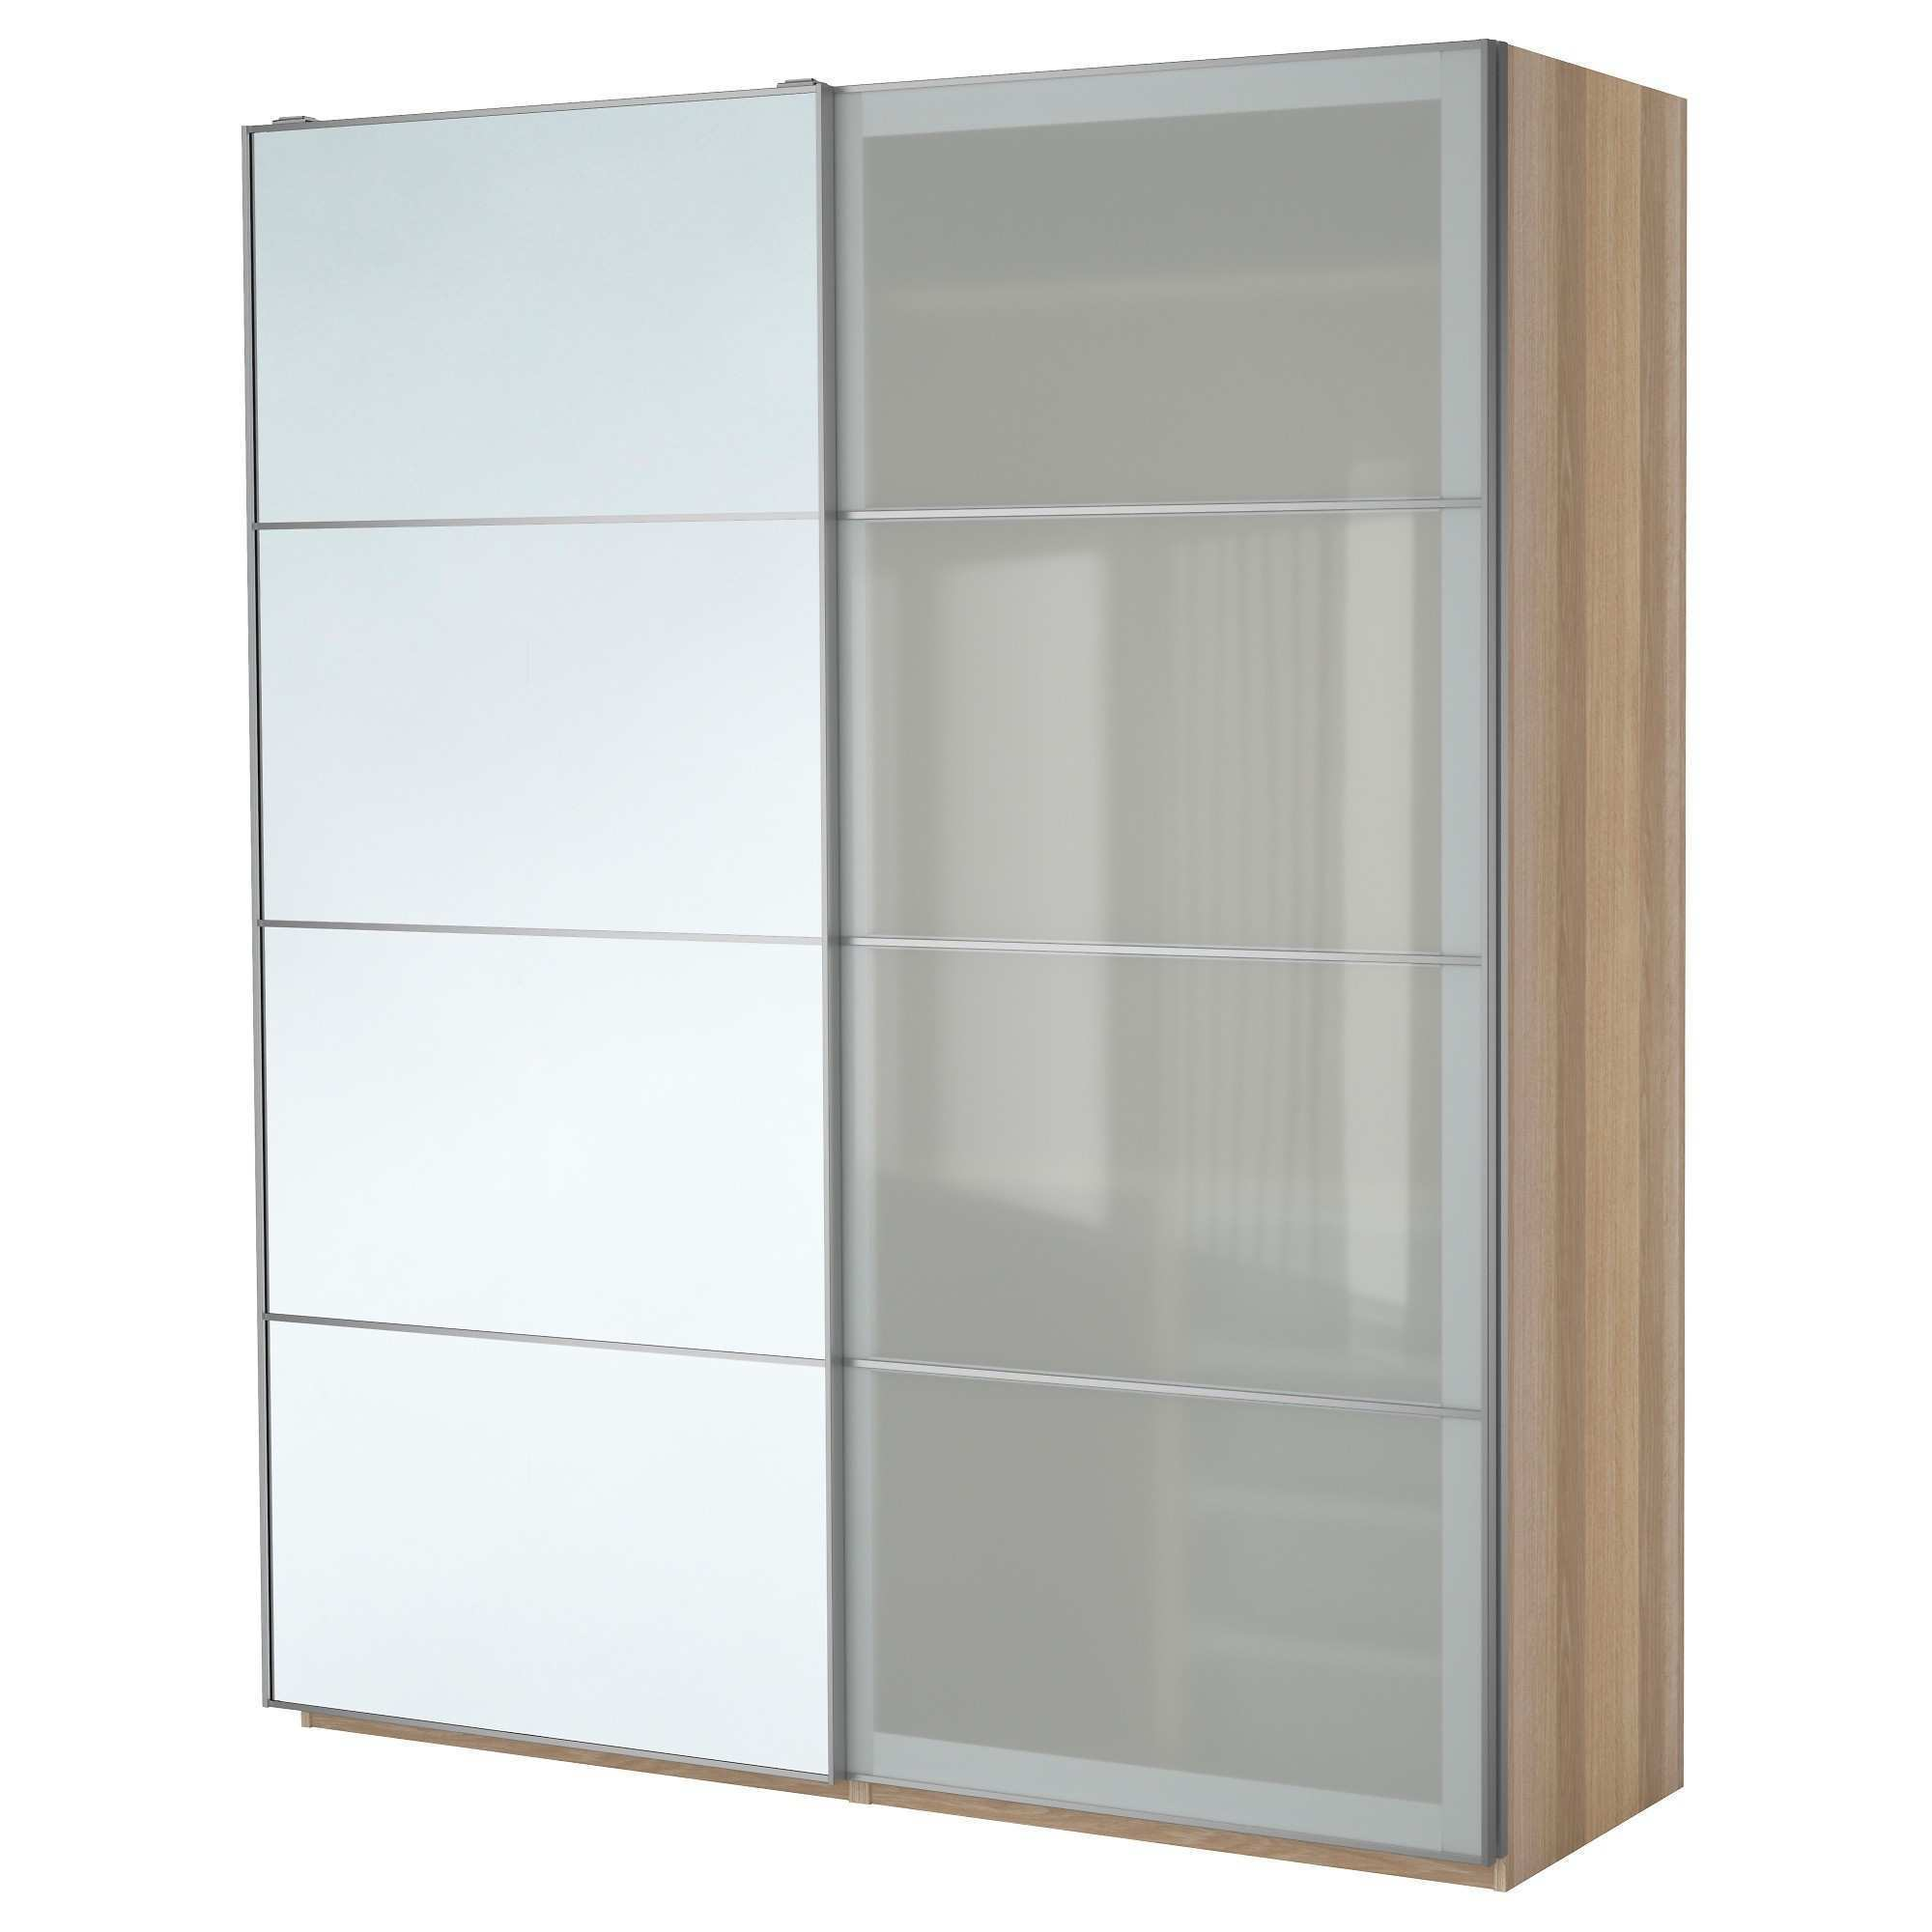 3xly Wardrobe Ikea Usa Not All Products May Be Available line